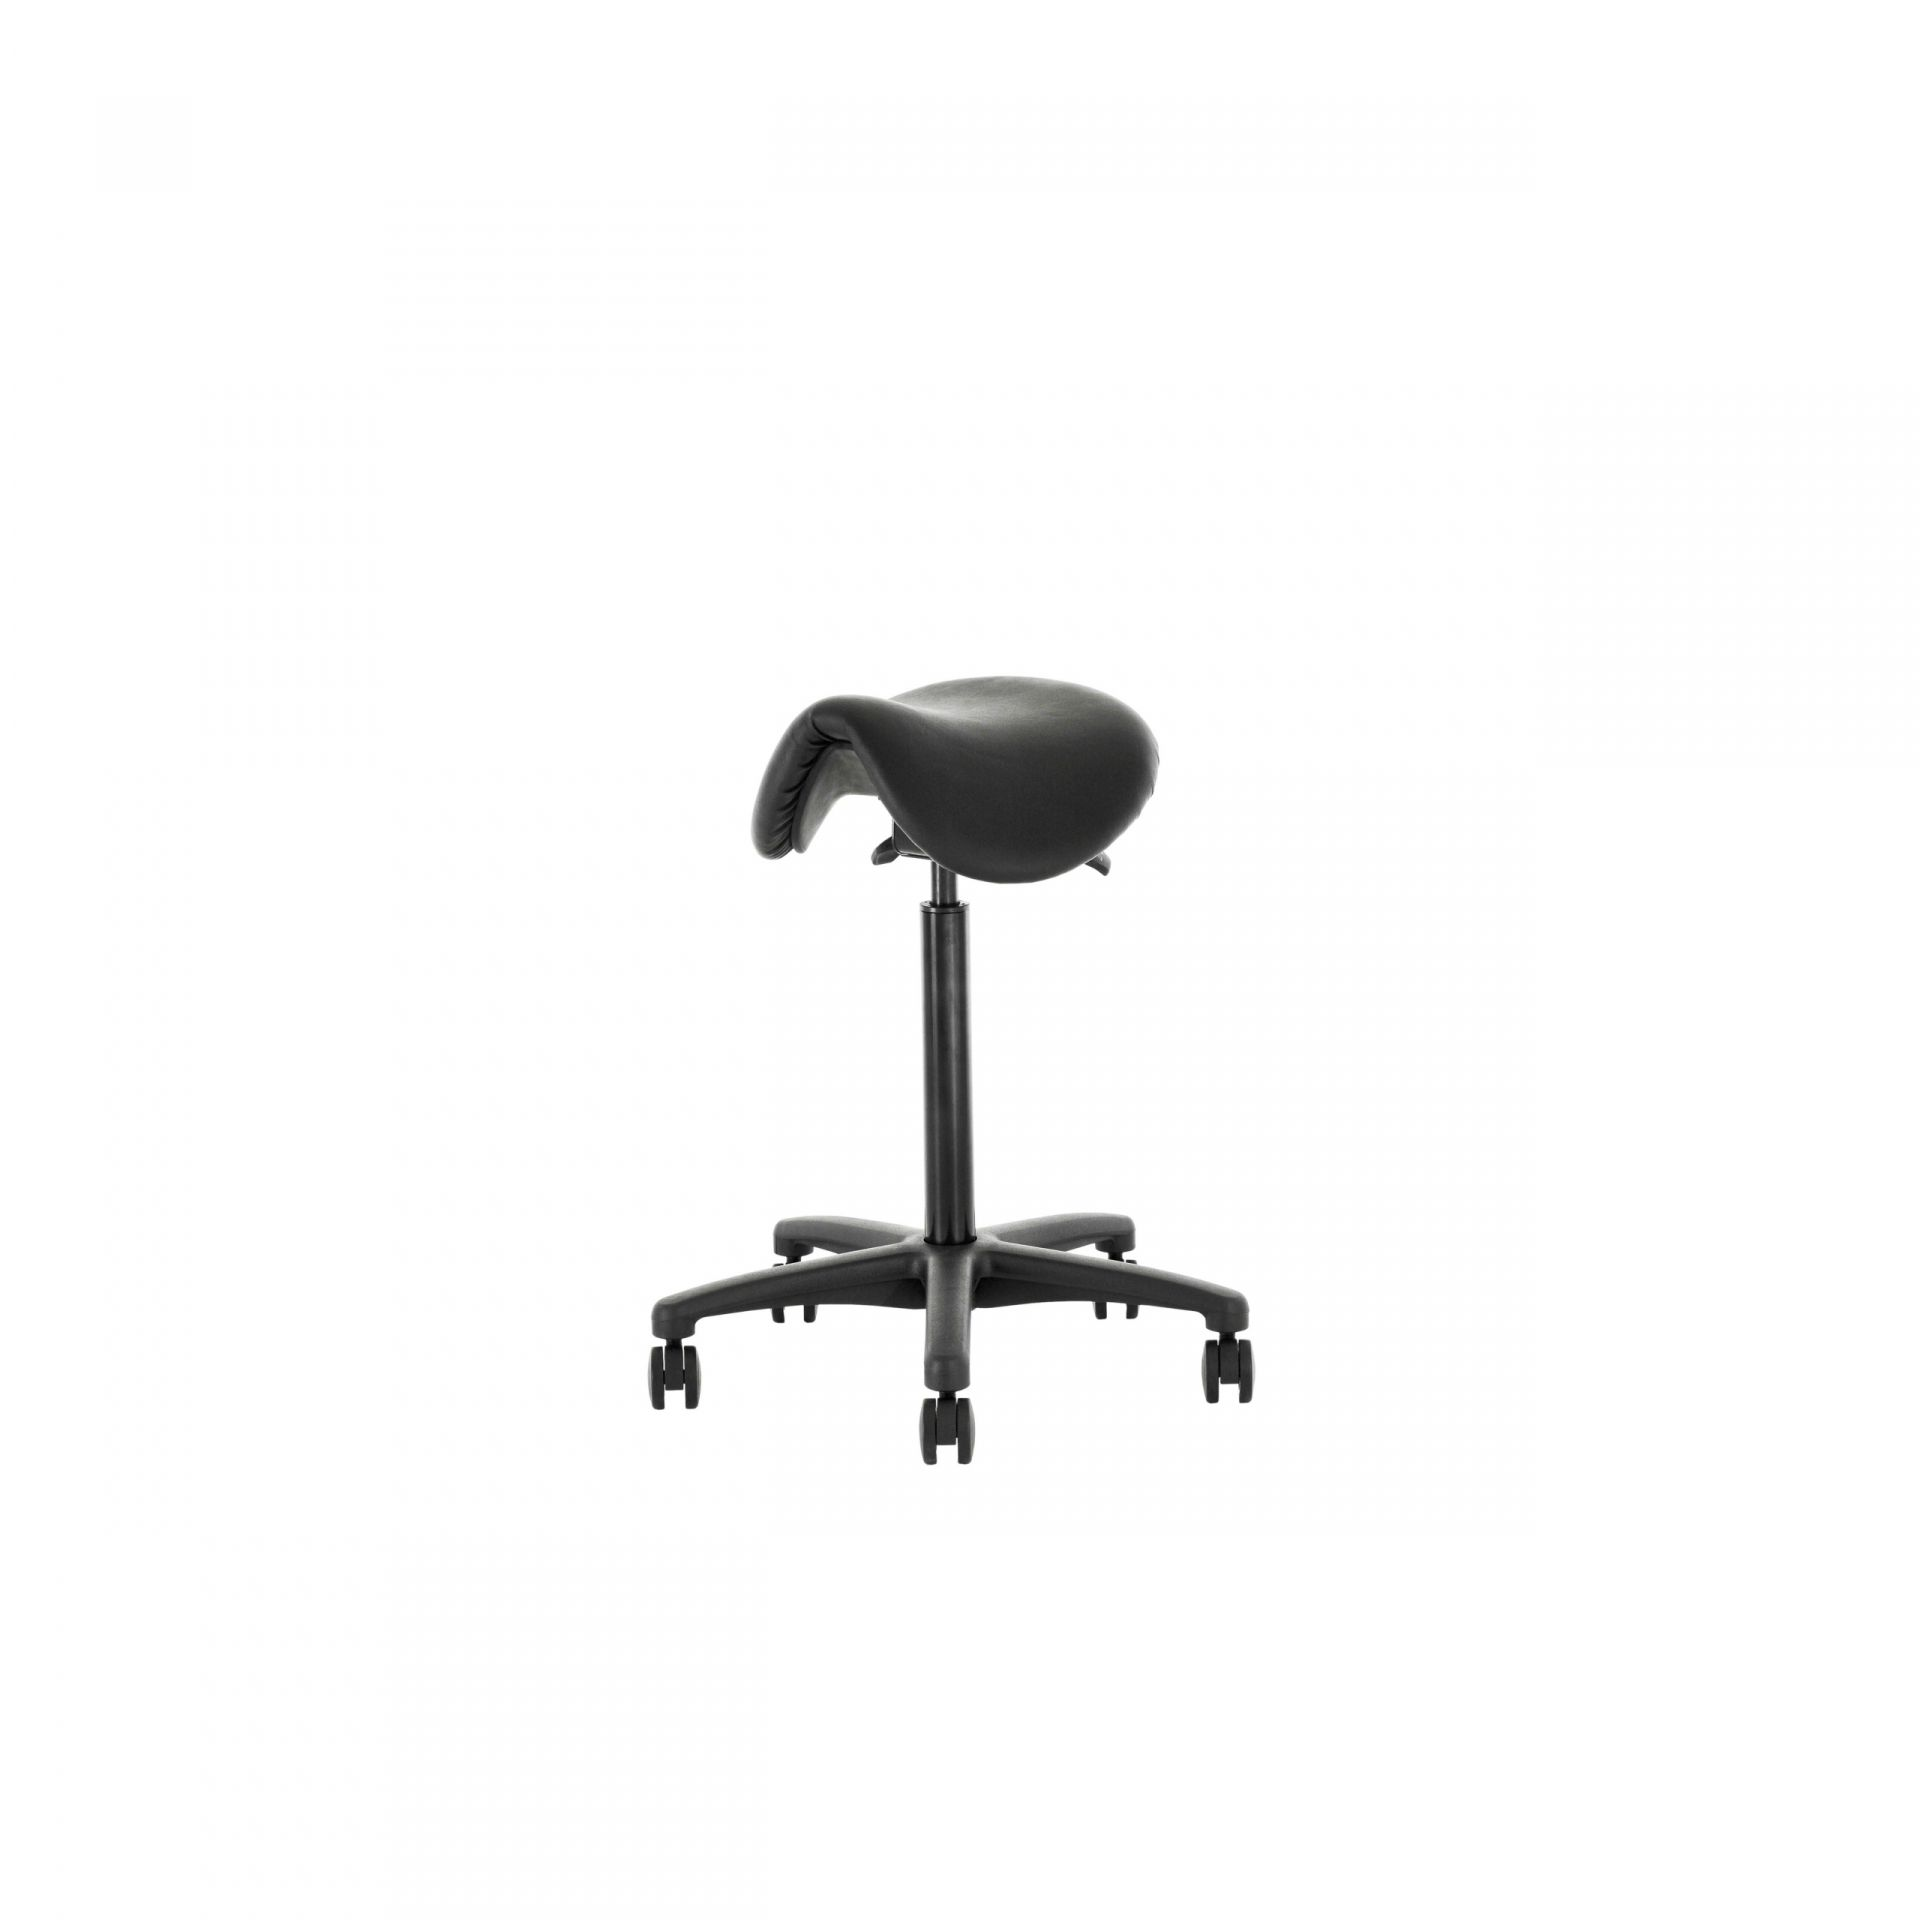 Saddle seat Office chair with saddle seat product image 3